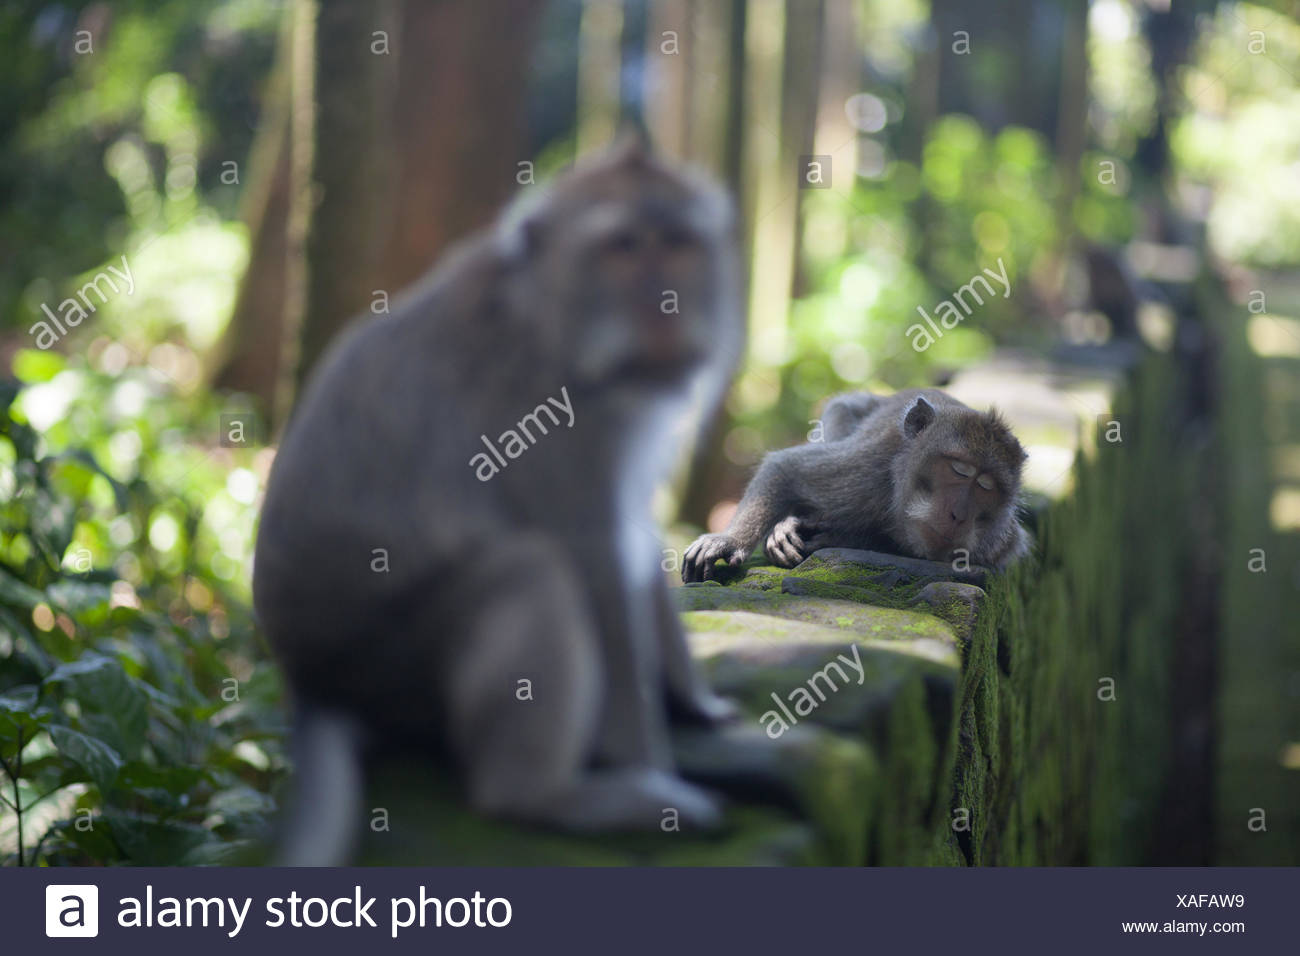 Long-Tailed Macaques On Wall - Stock Image